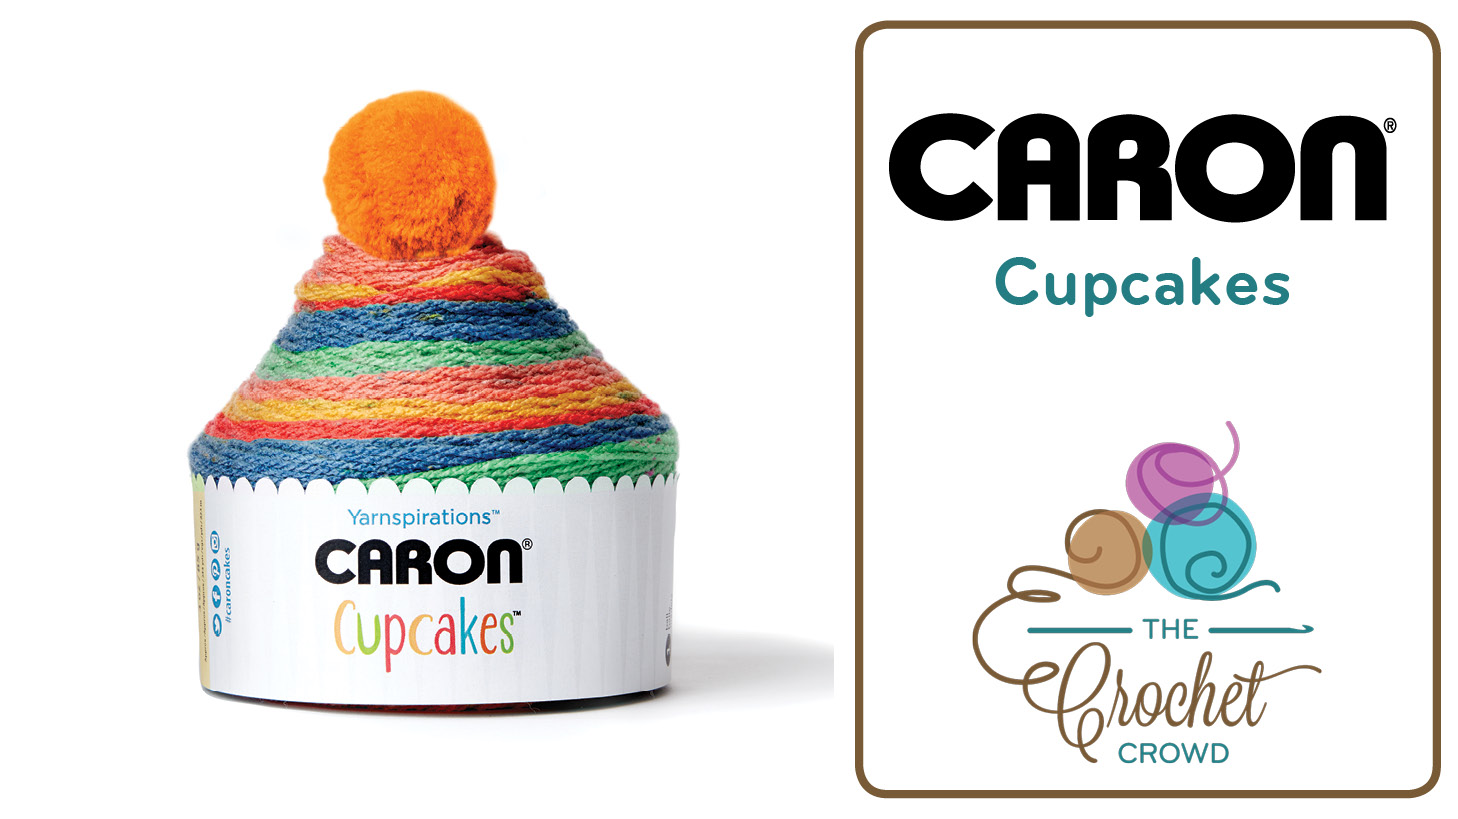 What To Do With Caron Cupcakes Yarn